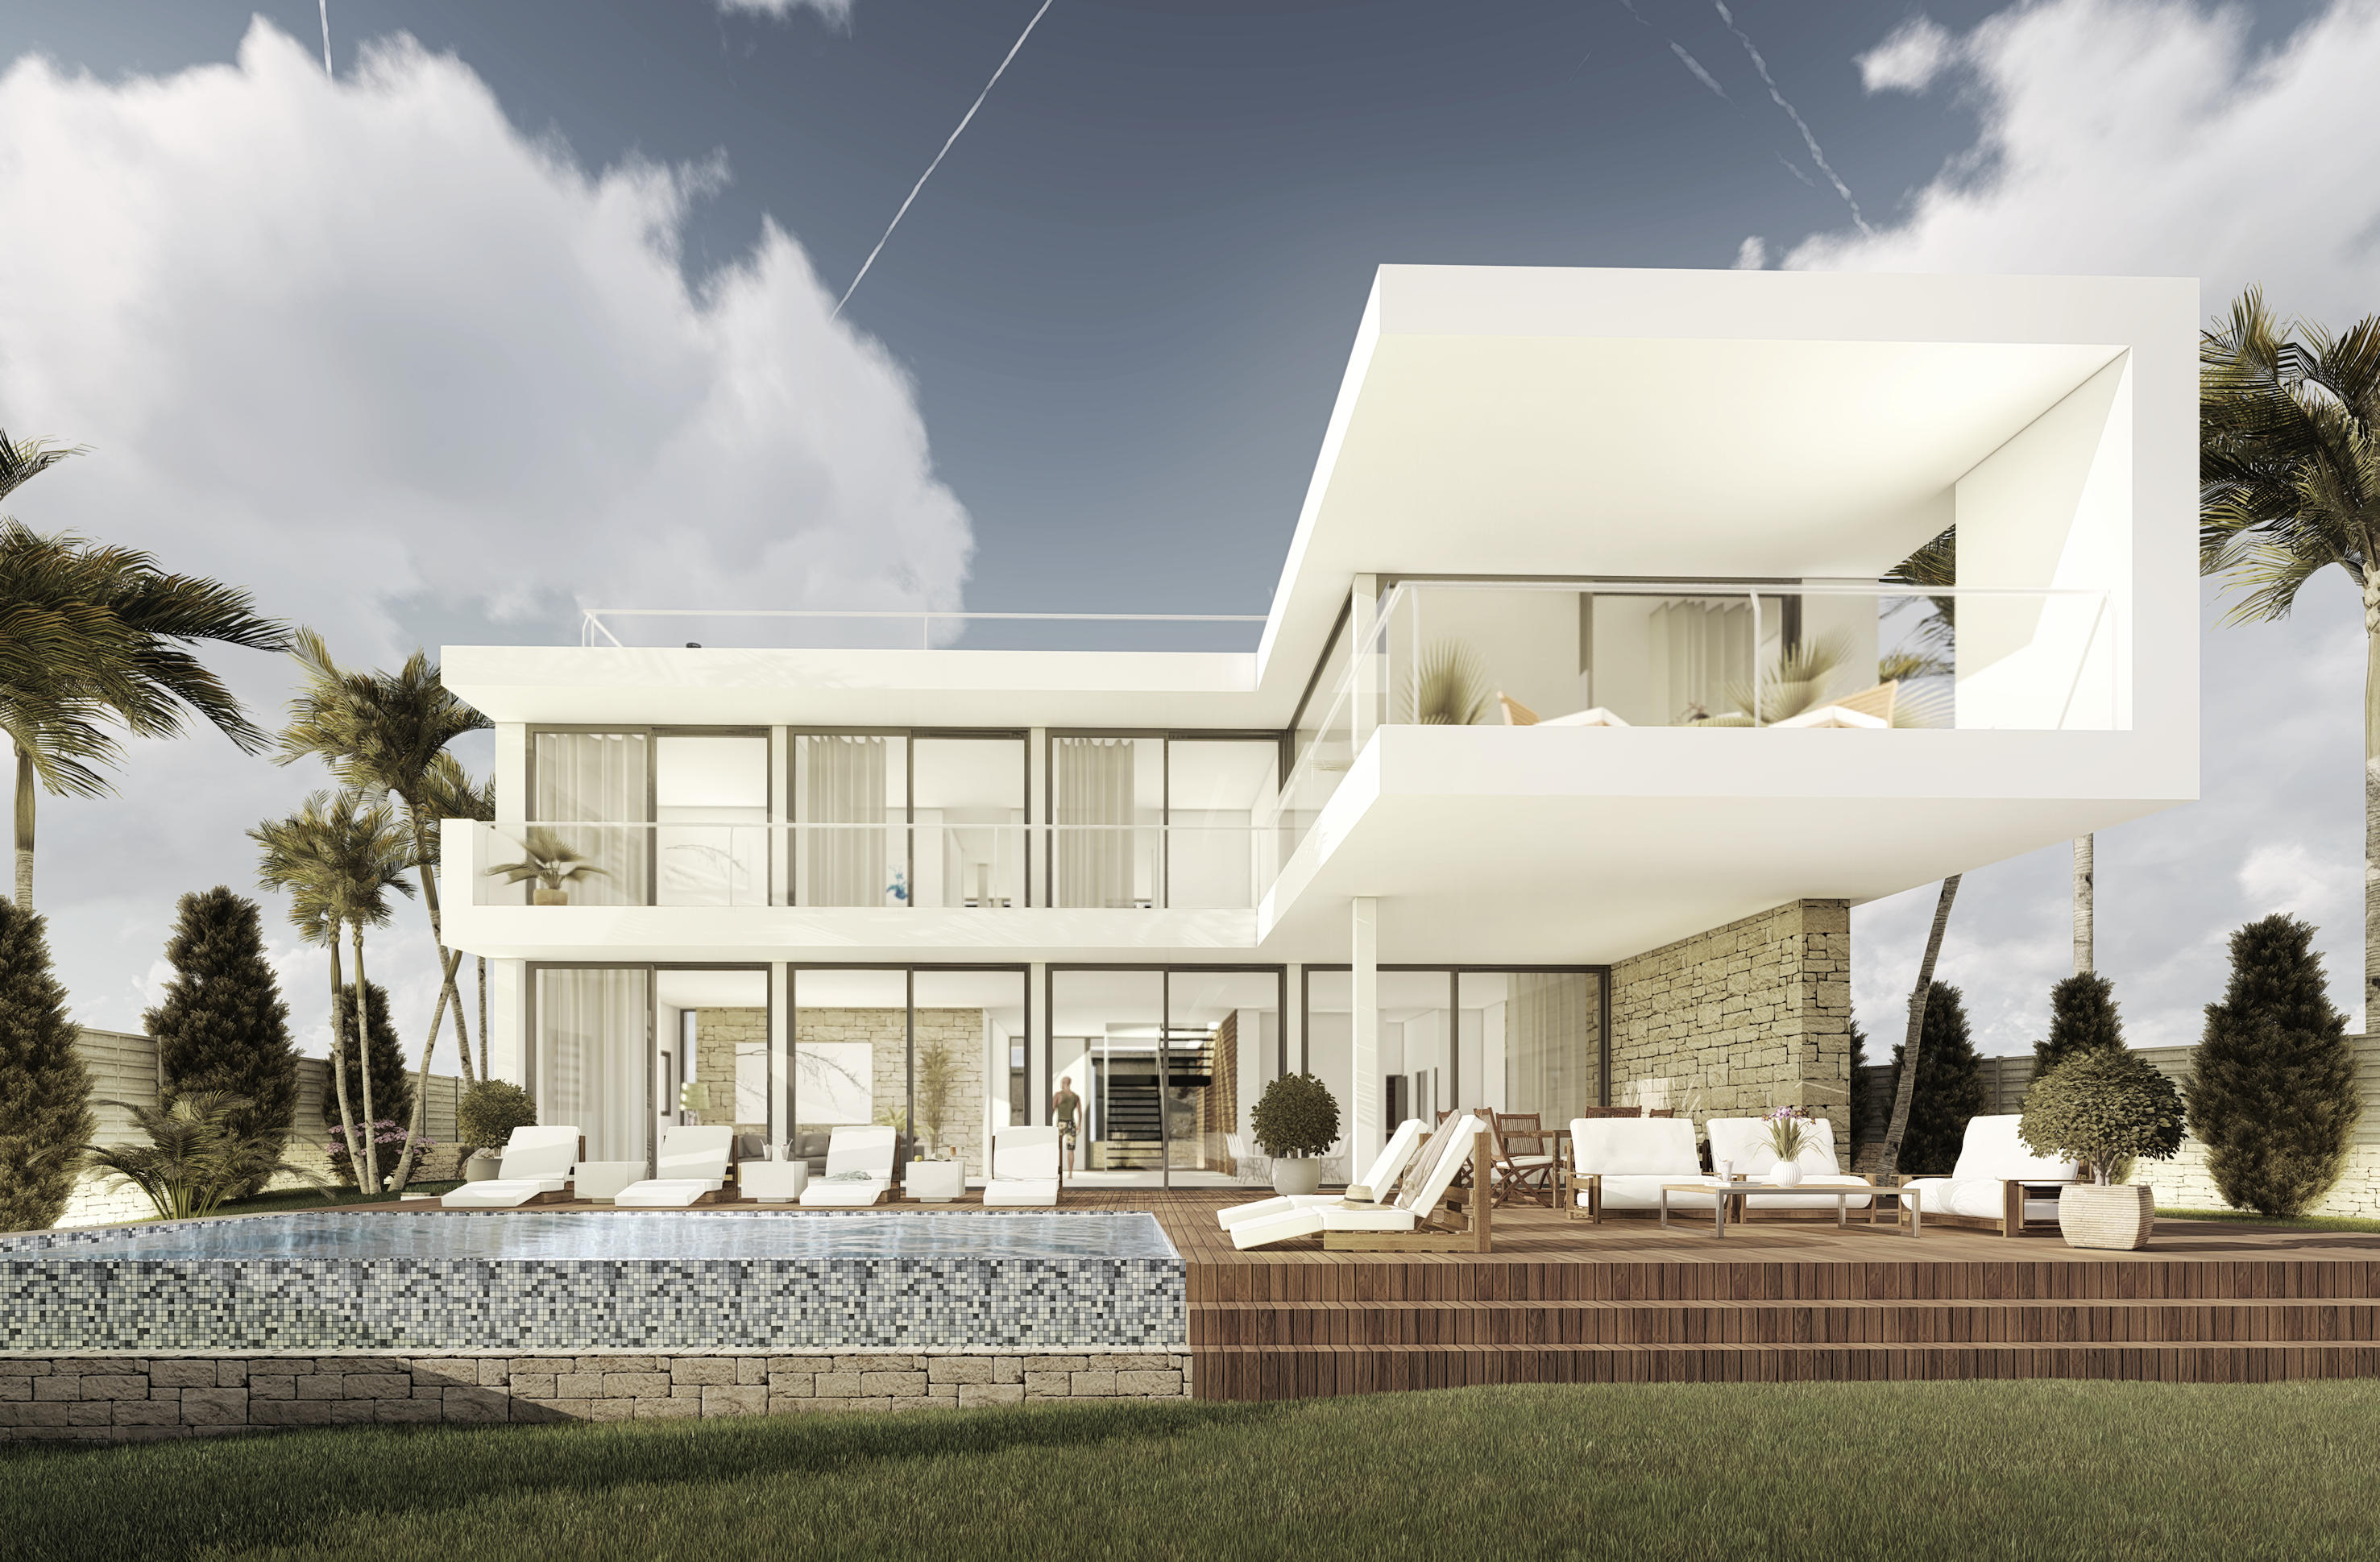 Unique opportunity to purchase a villa project Cala Vinyes